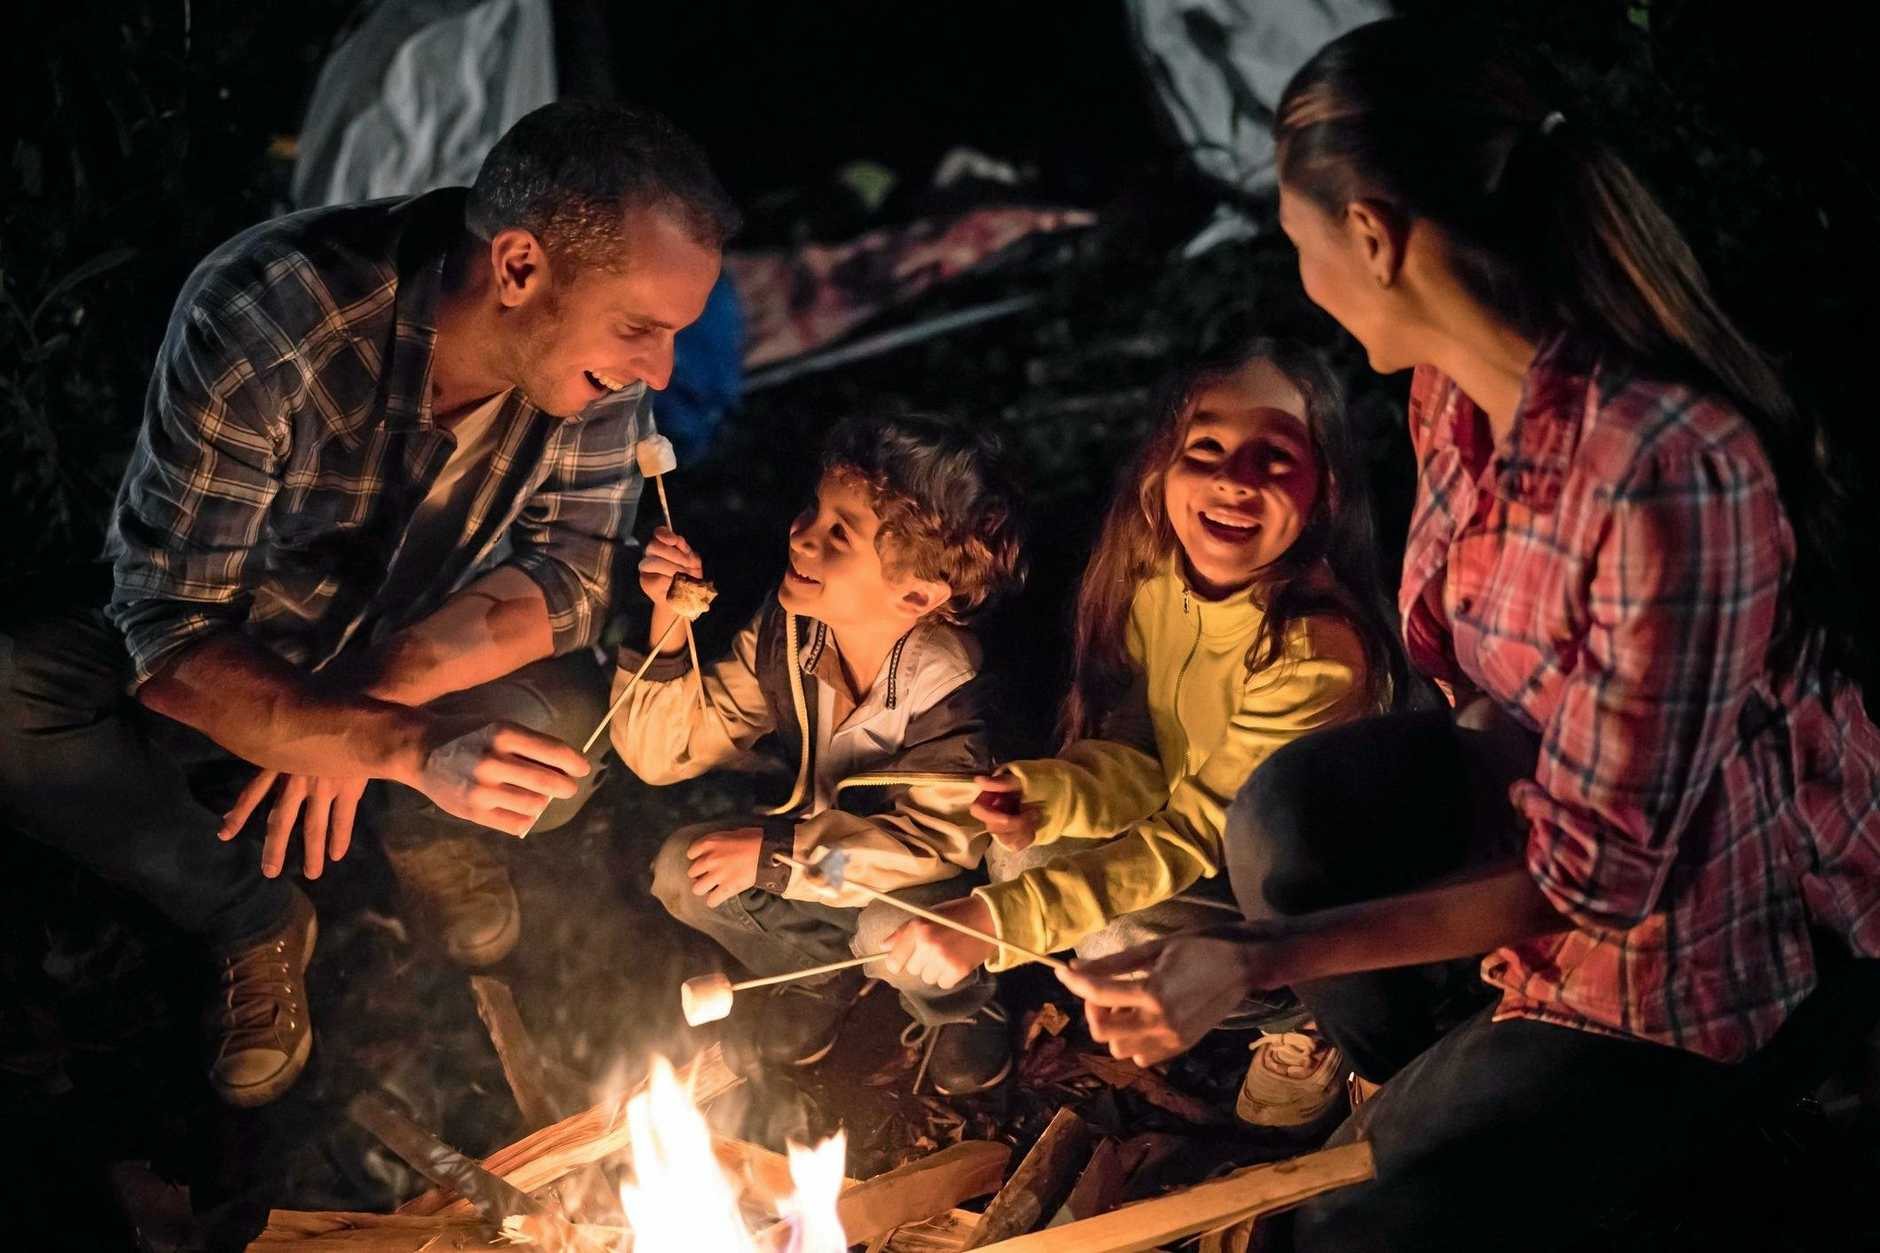 This might be how we expect marshmallow toasting to go. However, for one child the ideal was used to mask a different event. A central Queensland man preyed on a young girl by using bonfires, fishing and shooting as covers for abuse.